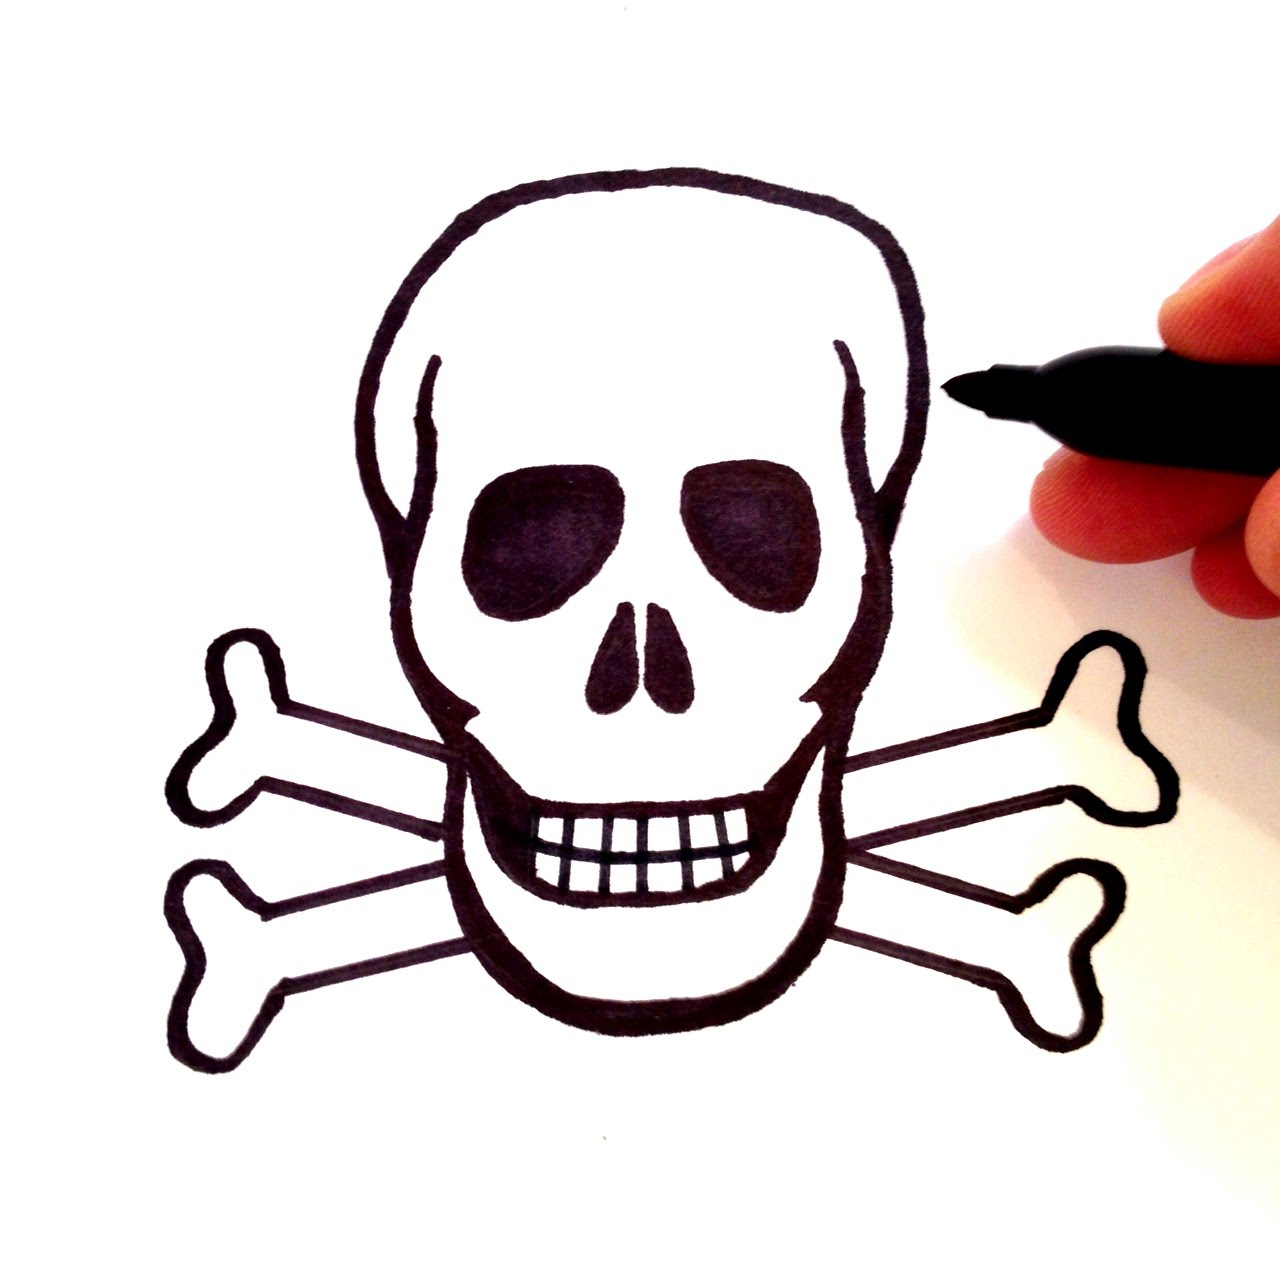 1280x1280 Easy To Draw Skull And Crossbones Simple Skull Drawing Free